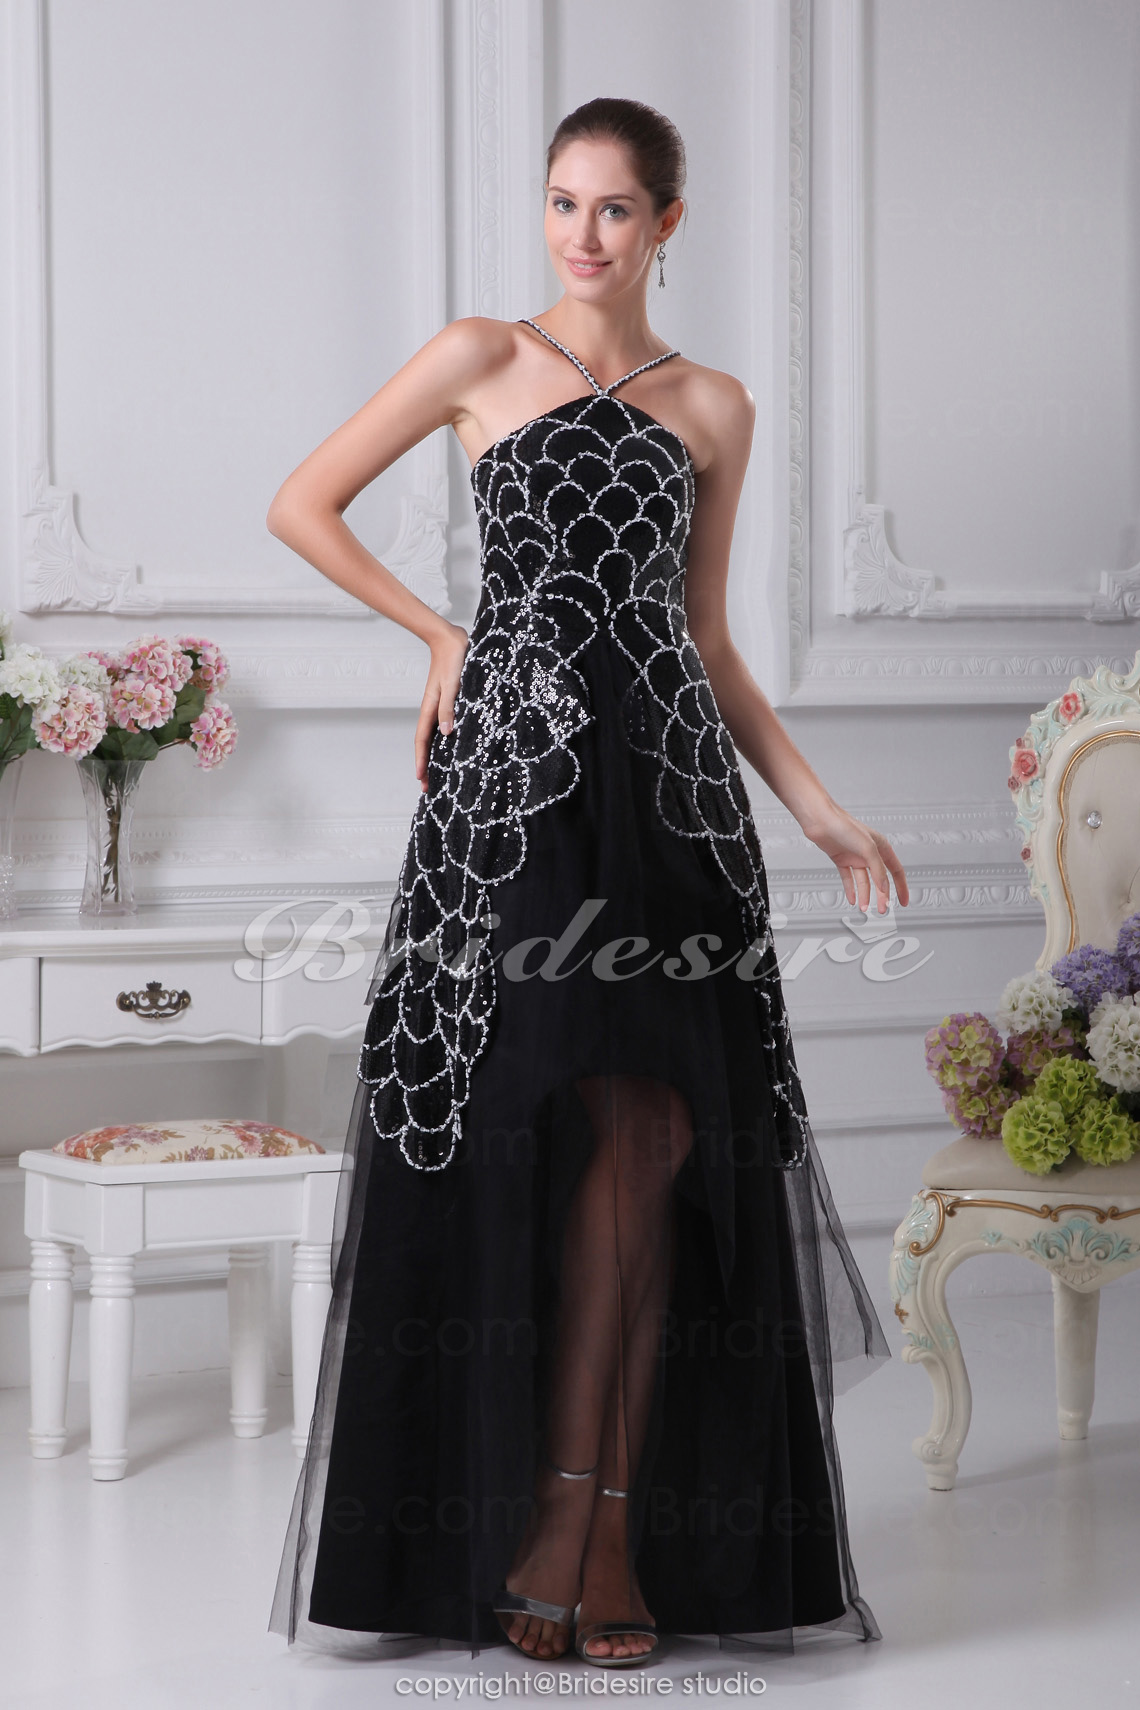 A-line Strapless Asymmetrical Short/Mini Sleeveless Satin Tulle Sequined Dress